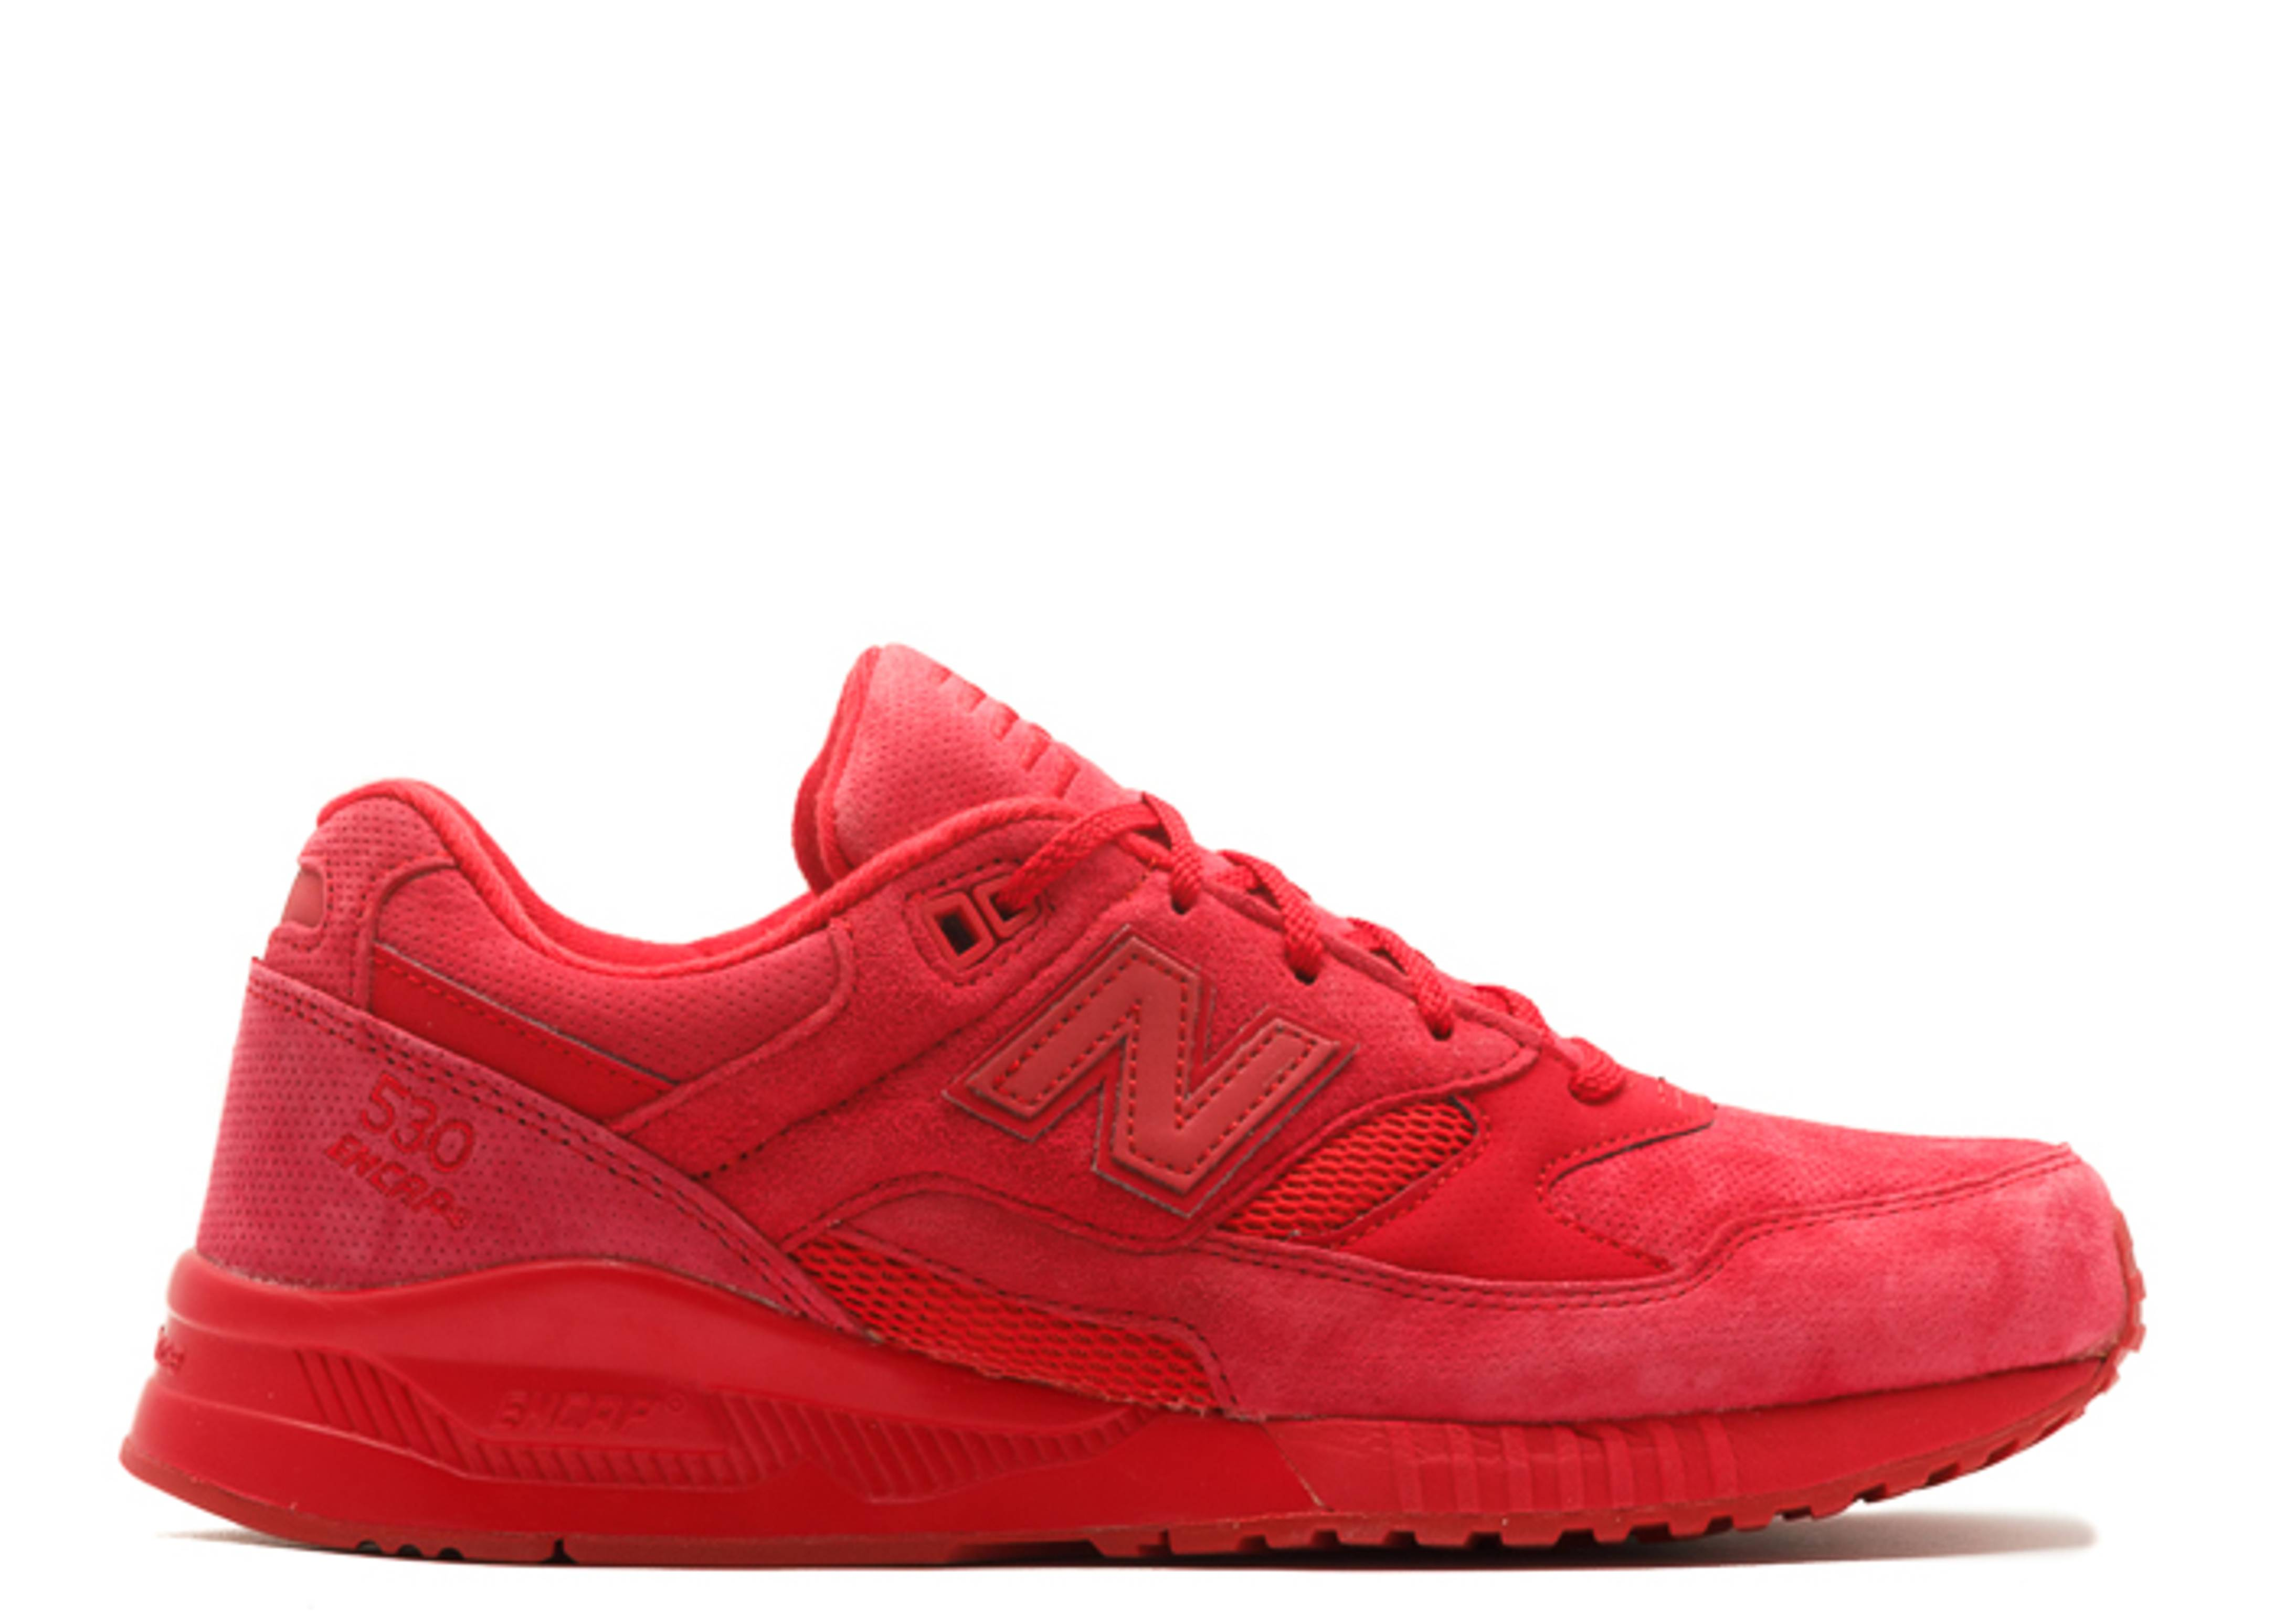 040907b6afb80 New Balance Sneakers for Men | Flight Club